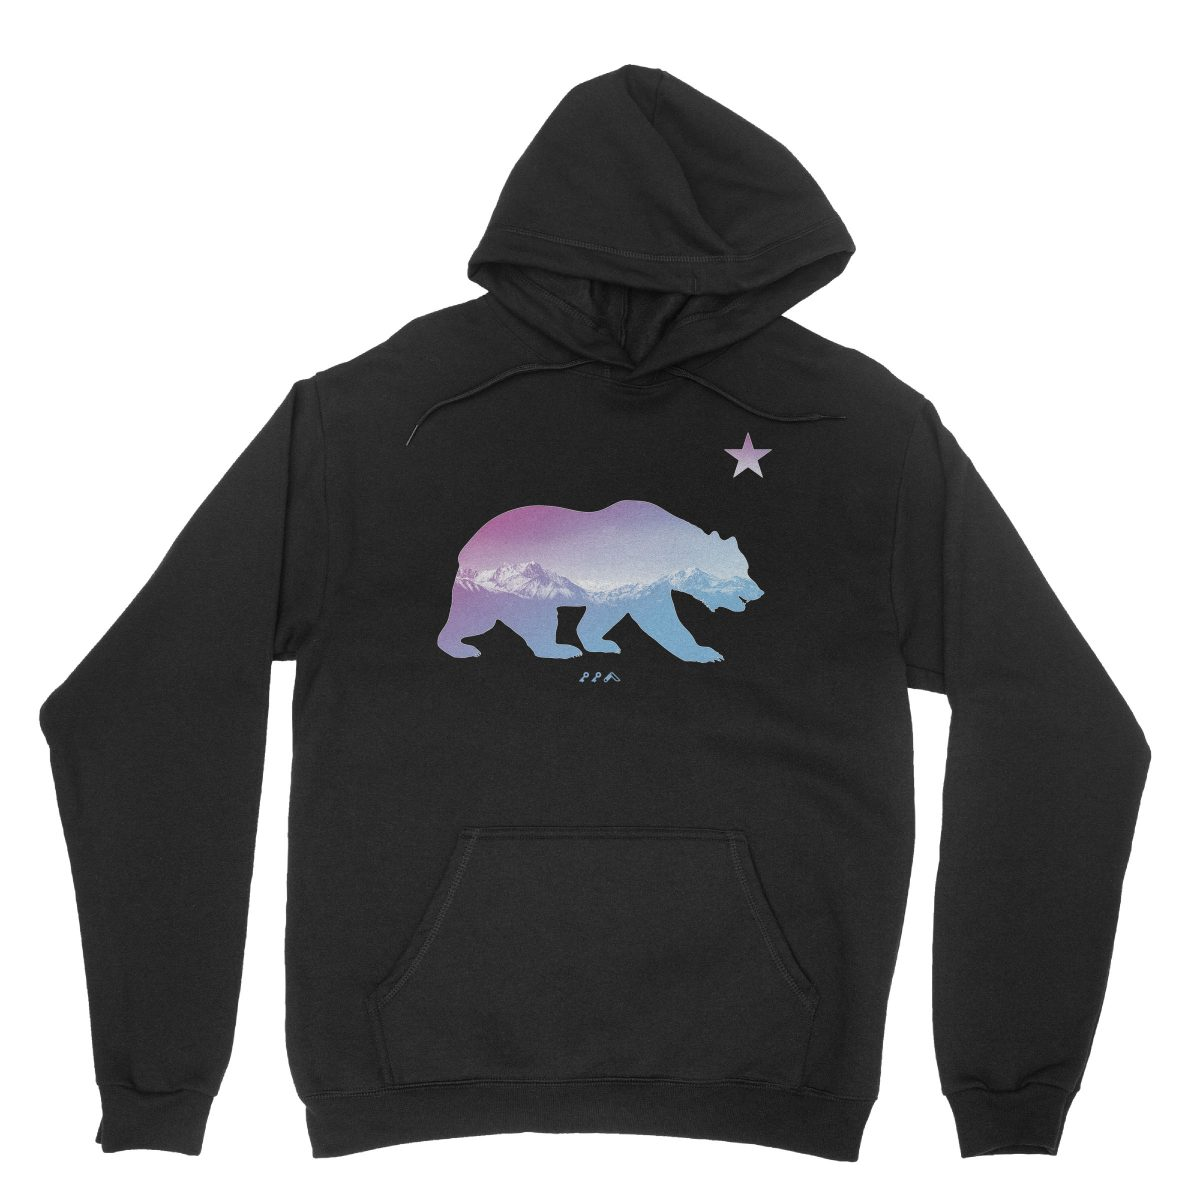 """BARE MOUNTAINS"" california bear hoodies in black by kikicutt"